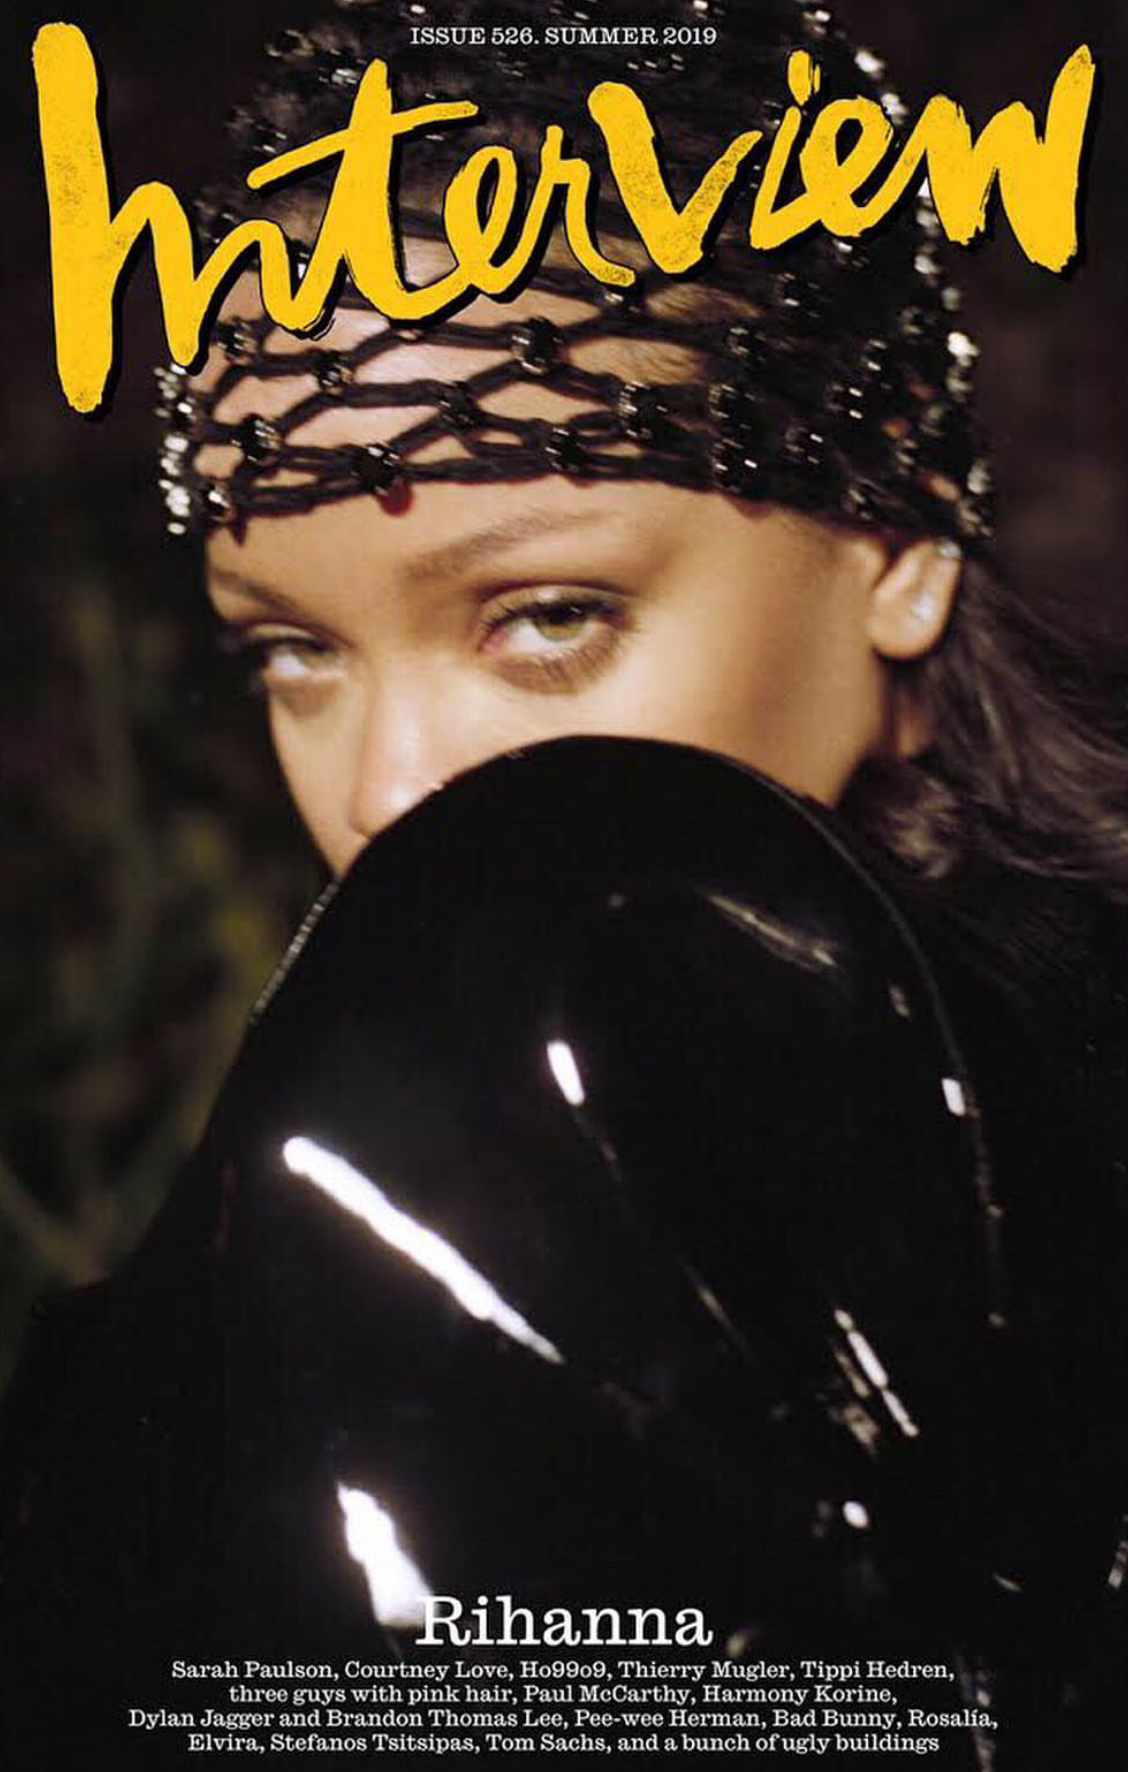 INTERVIEW MAGAZINE SUMMER 2019 RIHANNA COVER 2.png